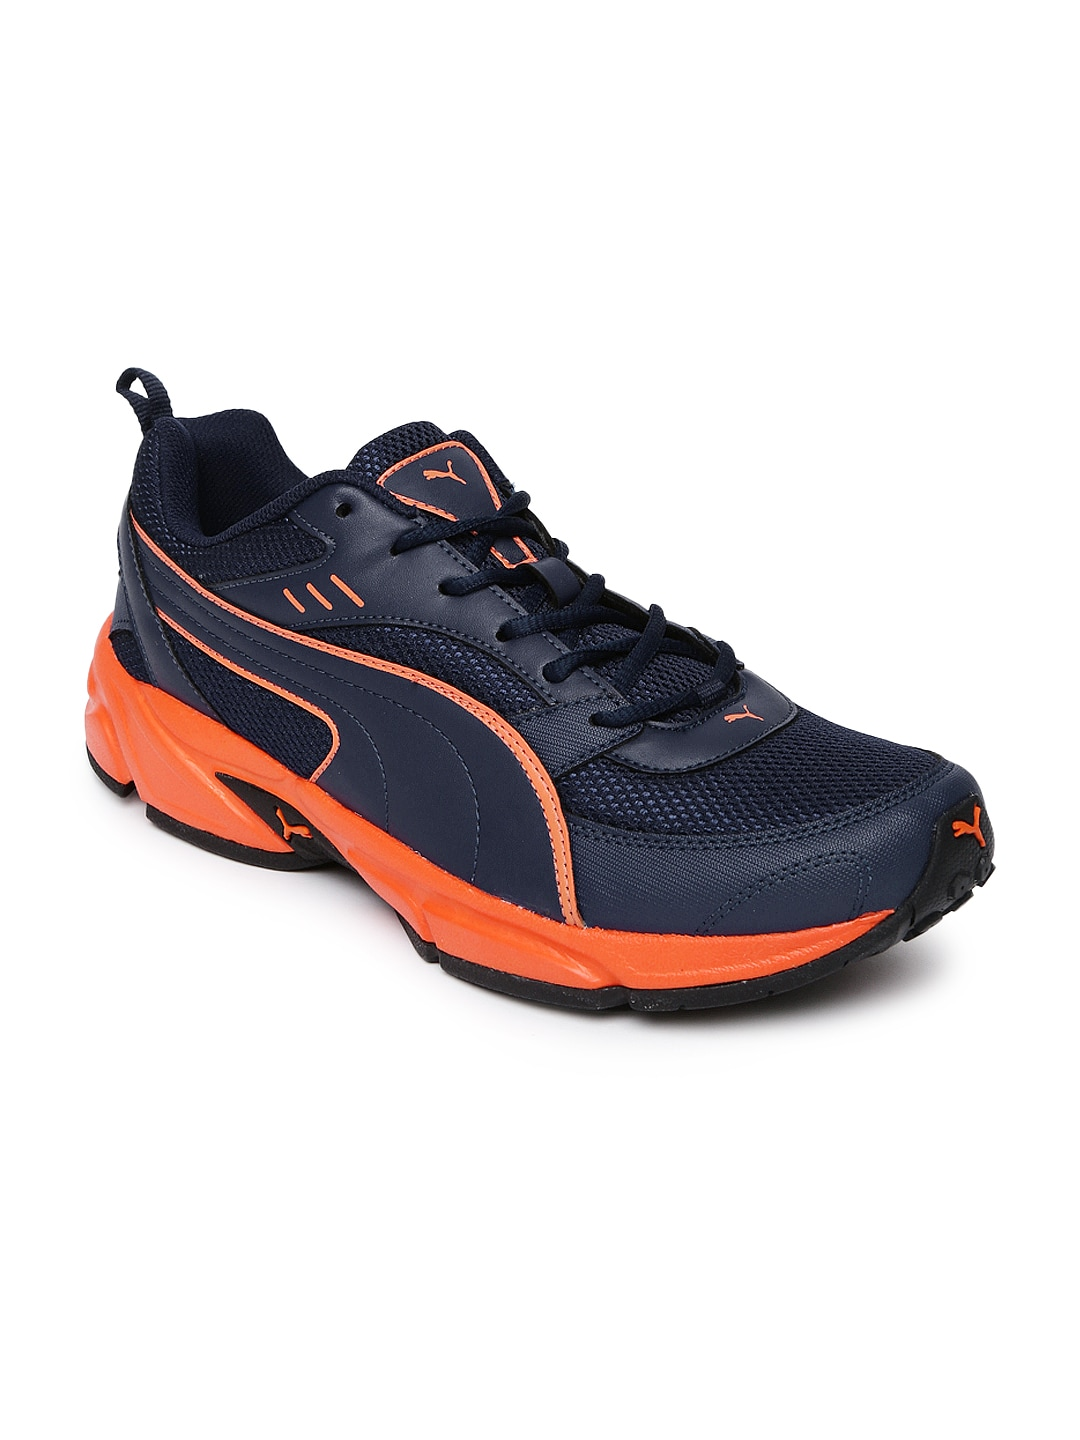 5aa190feecbbc3 Puma 18937209 Men Navy Atom Fashion Running Shoes - Best Price ...